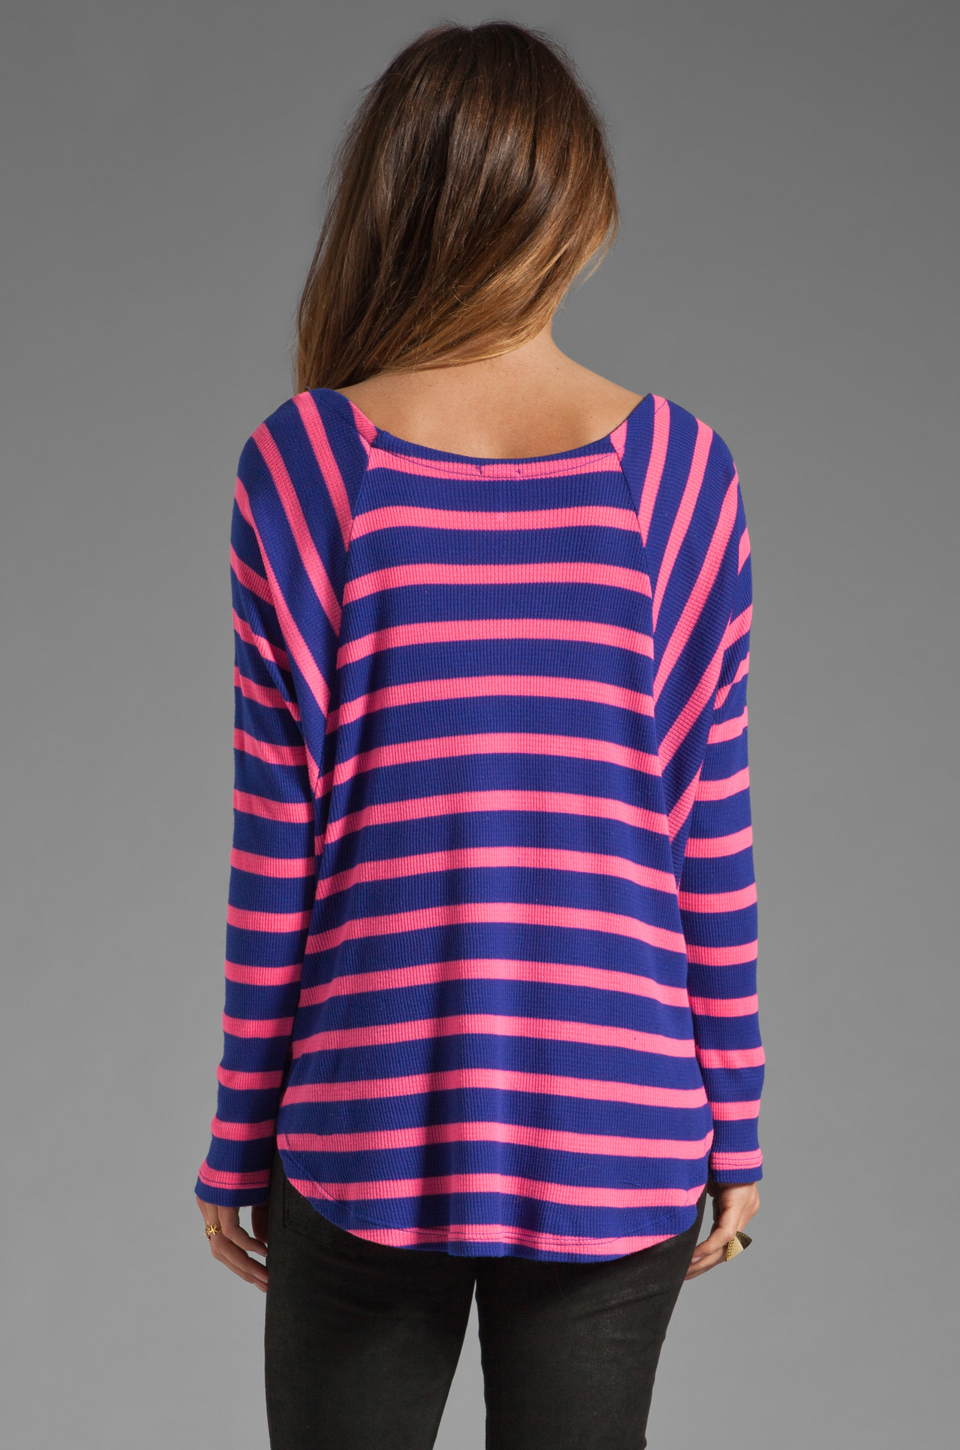 splendid pop stripe thermal top in purple